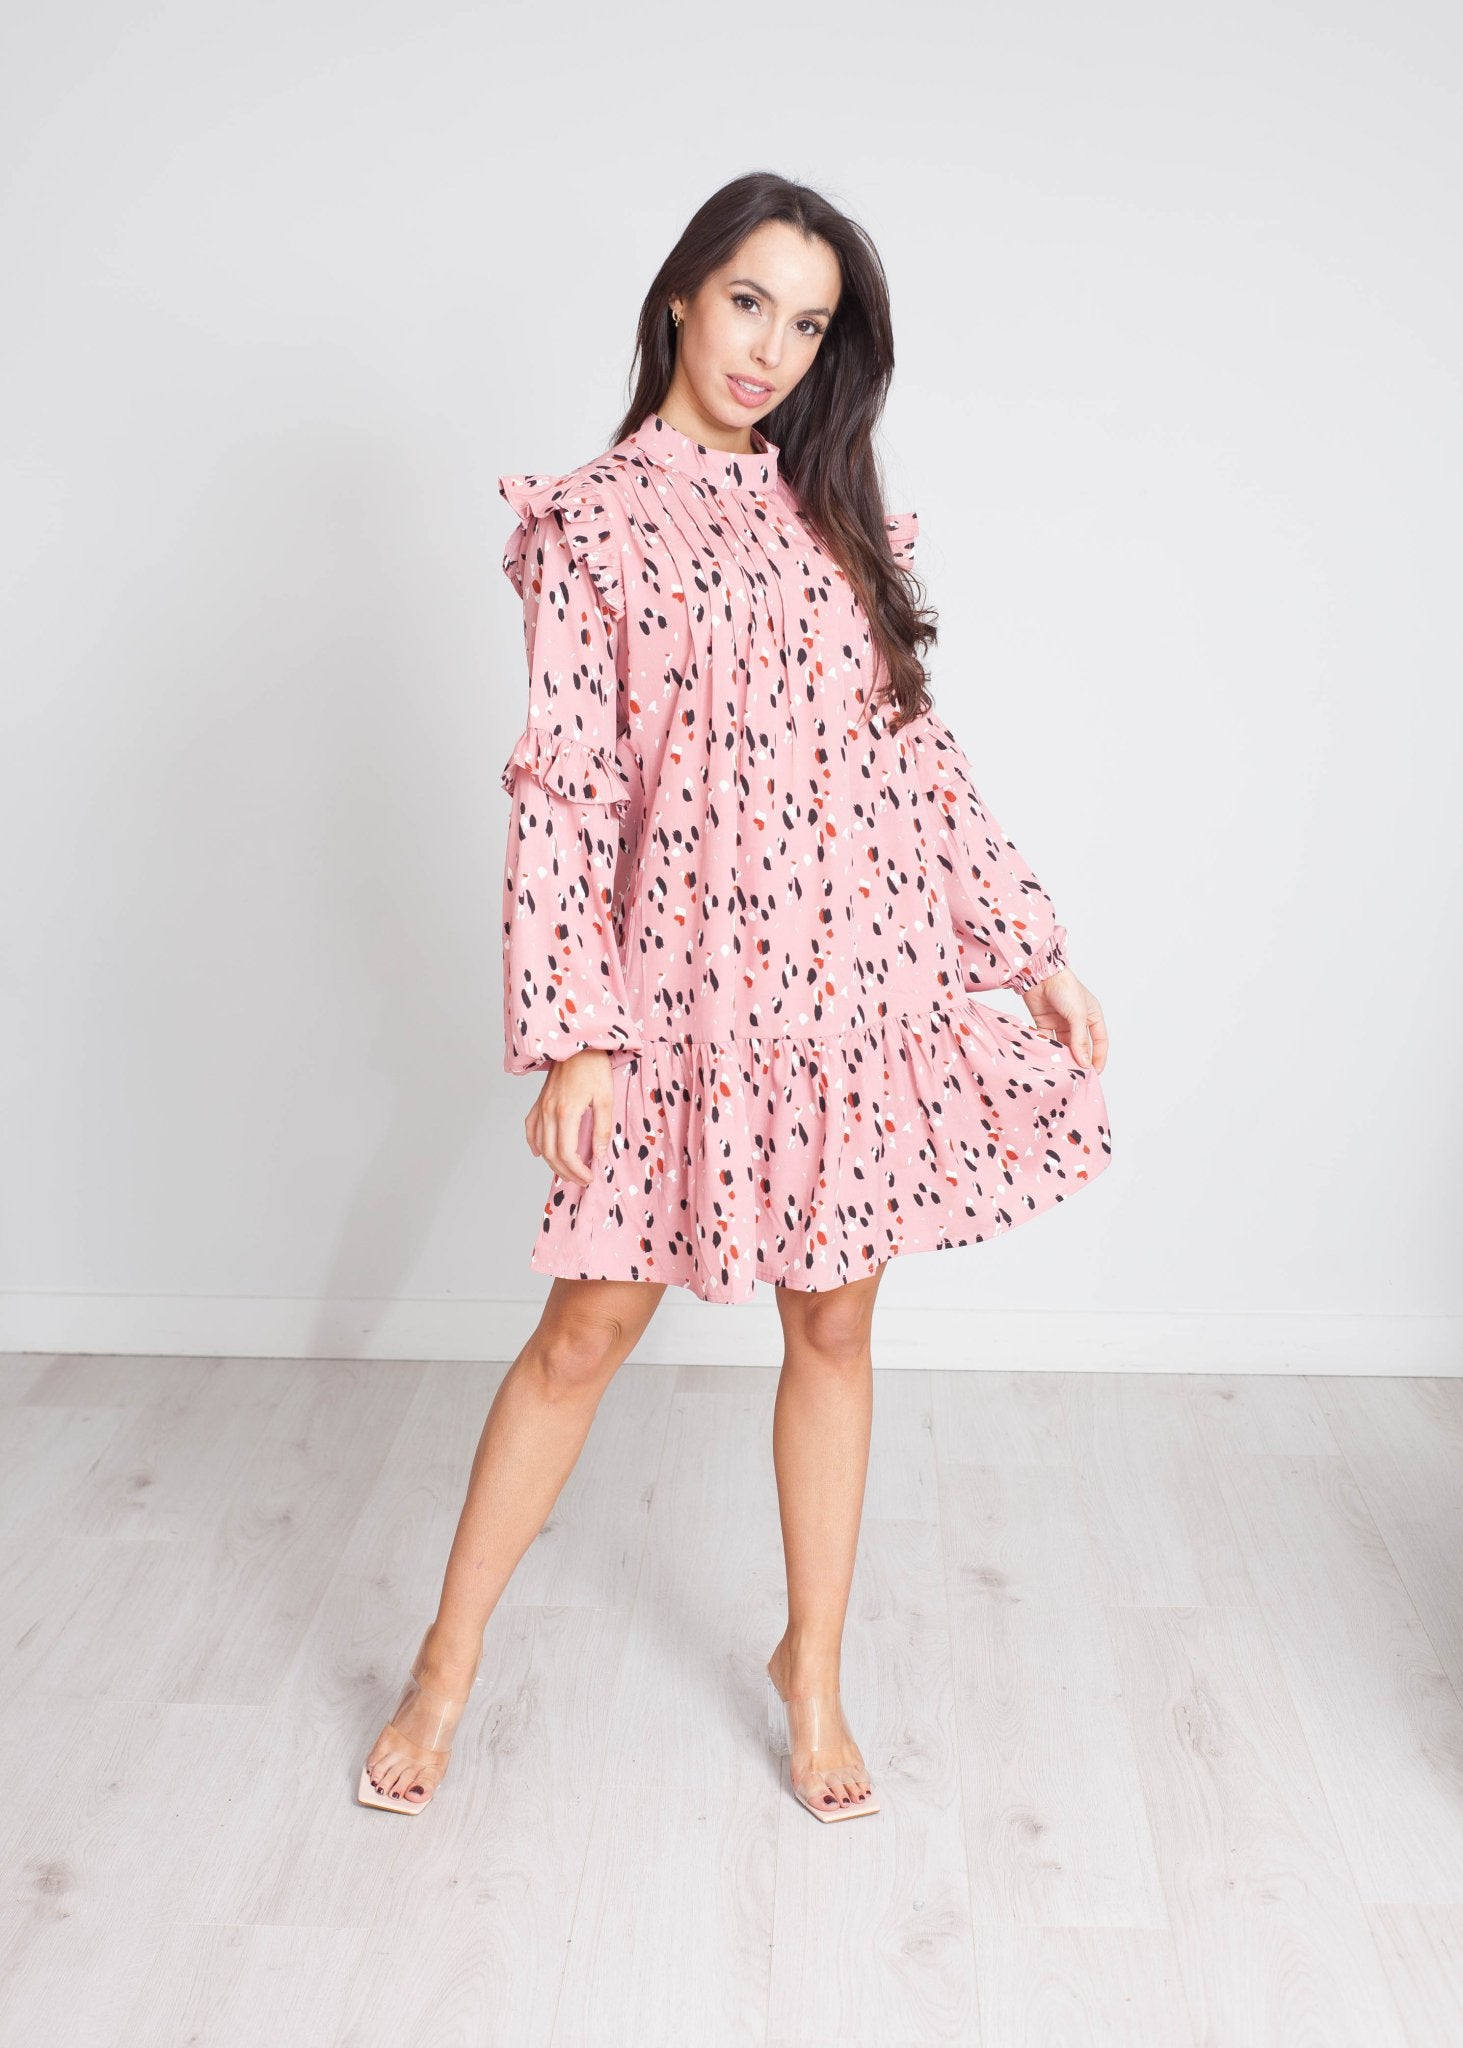 Freya Print Dress In Dusky Pink - The Walk in Wardrobe